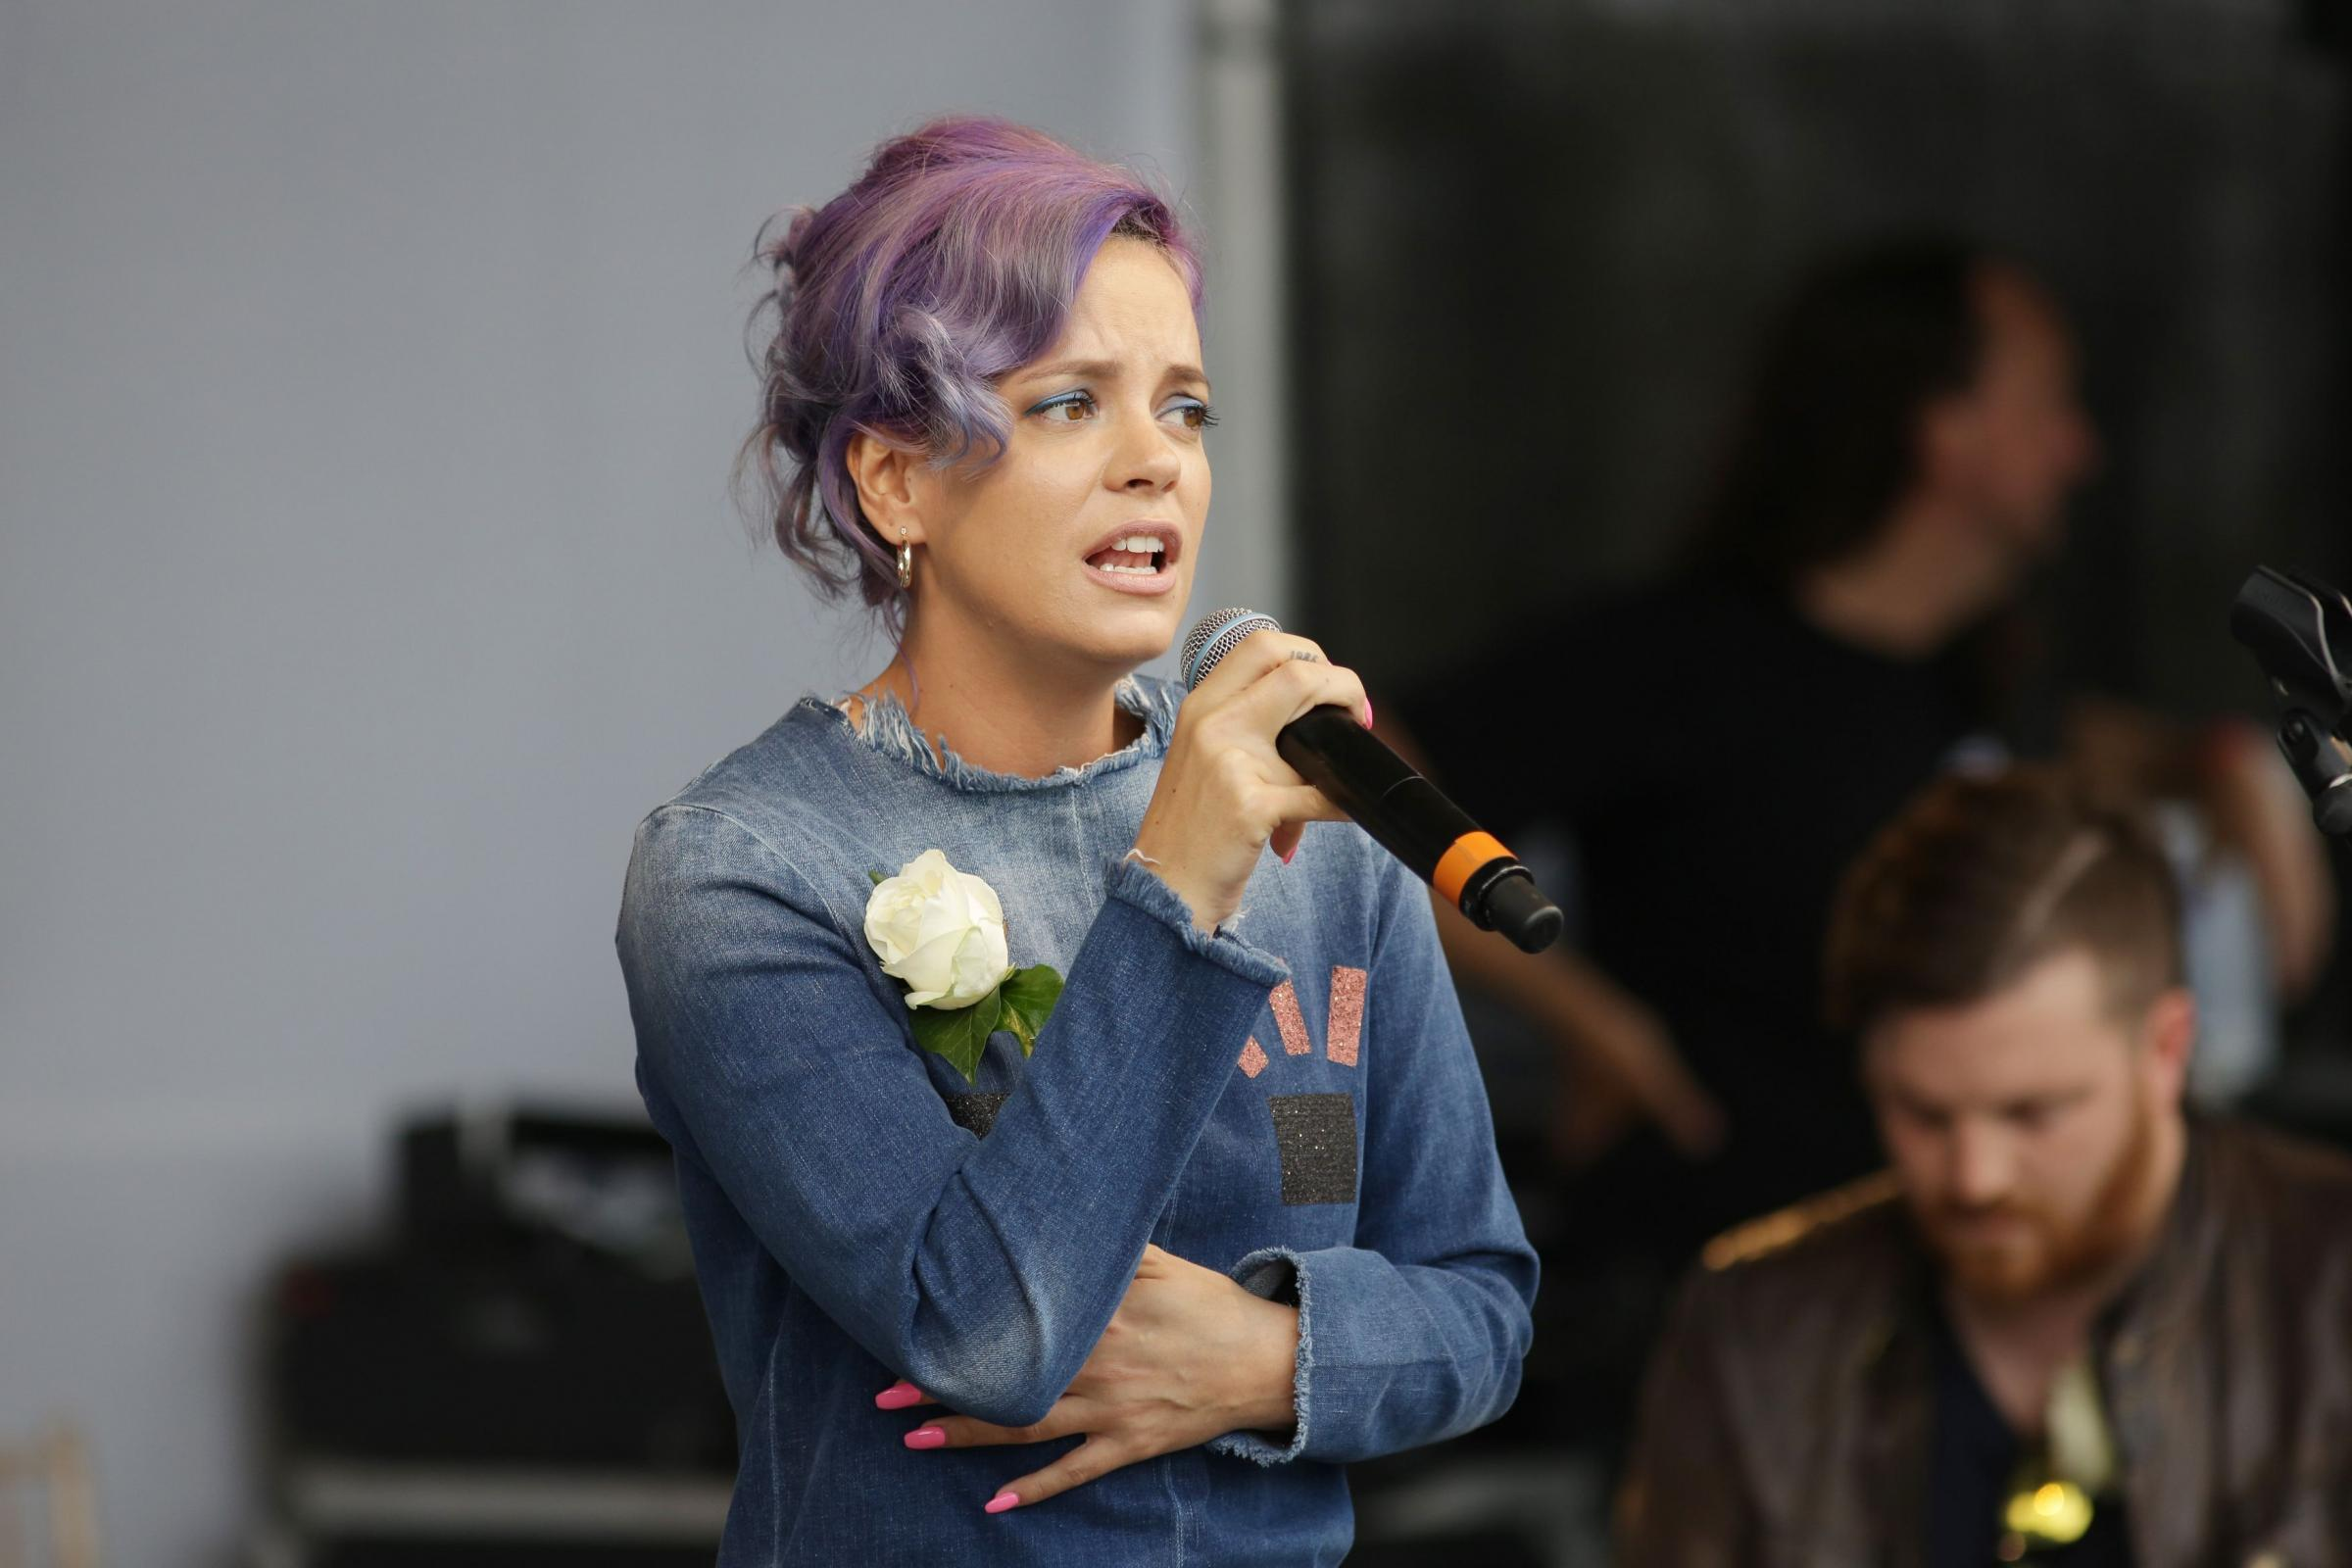 Lily Allen forced to pull out of performance in Chicago due to illness